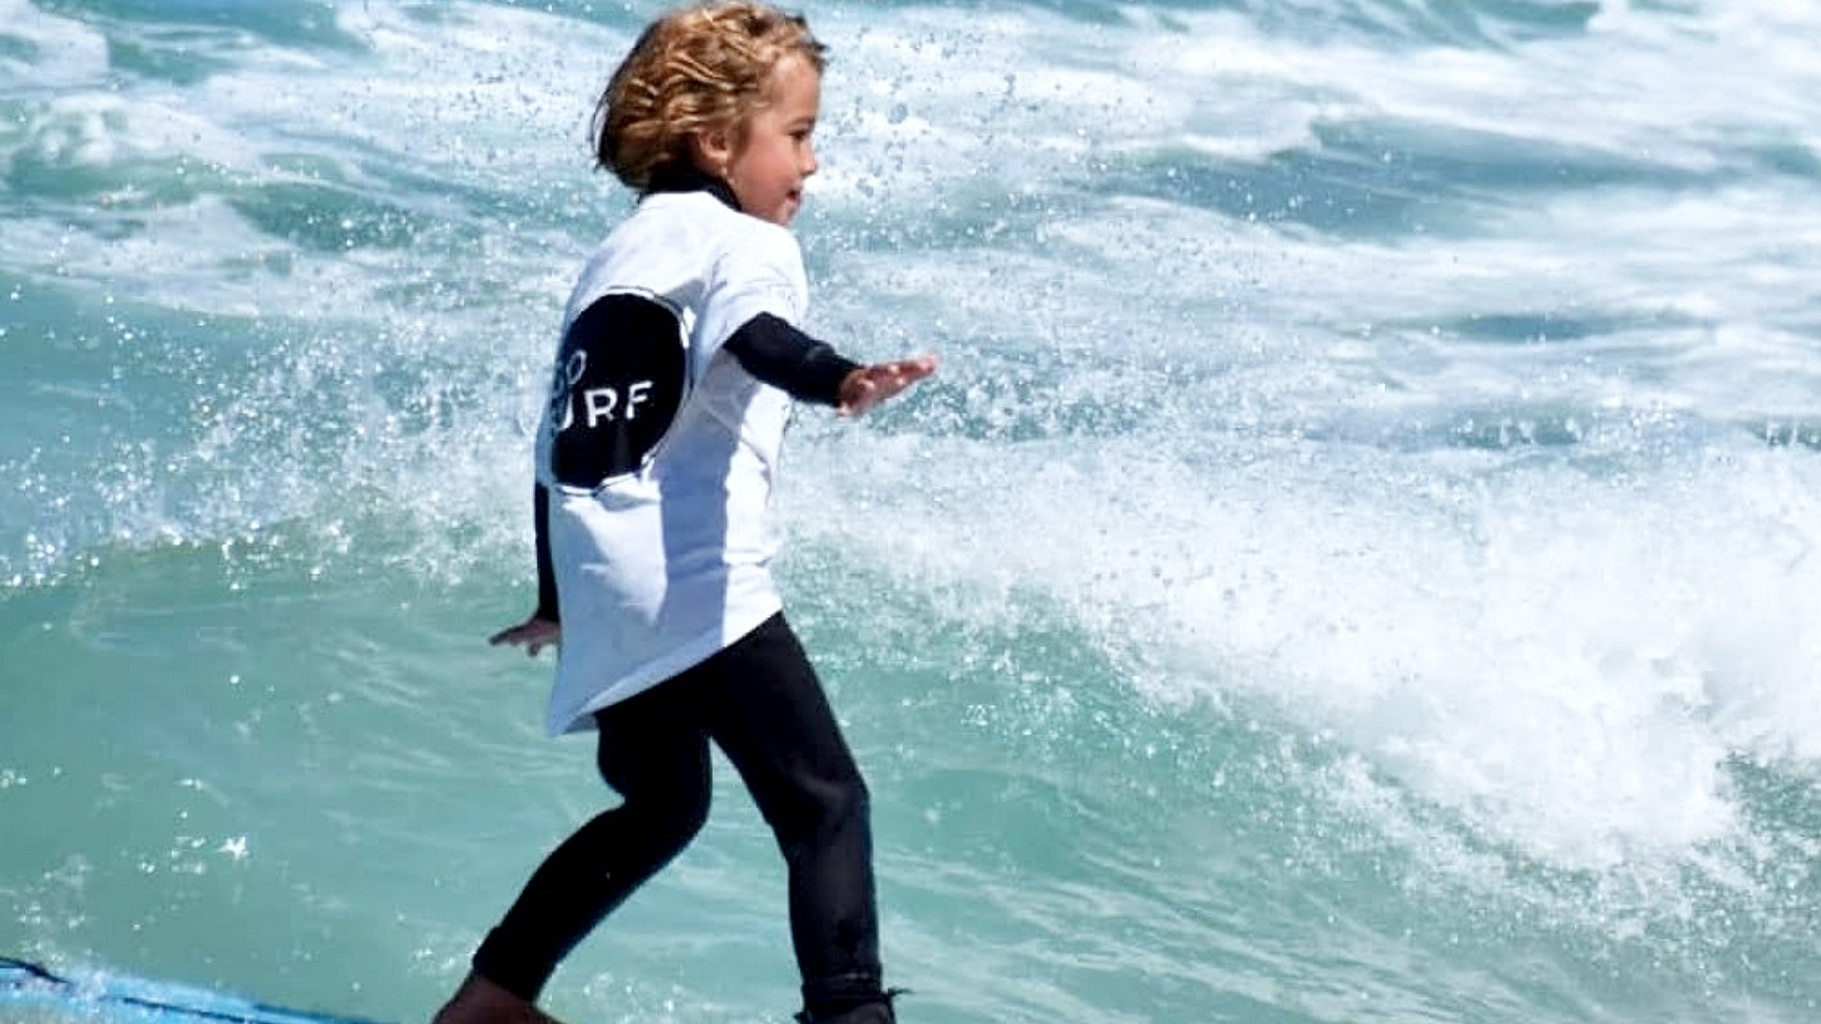 Kids SURF Lessons   Find out more »